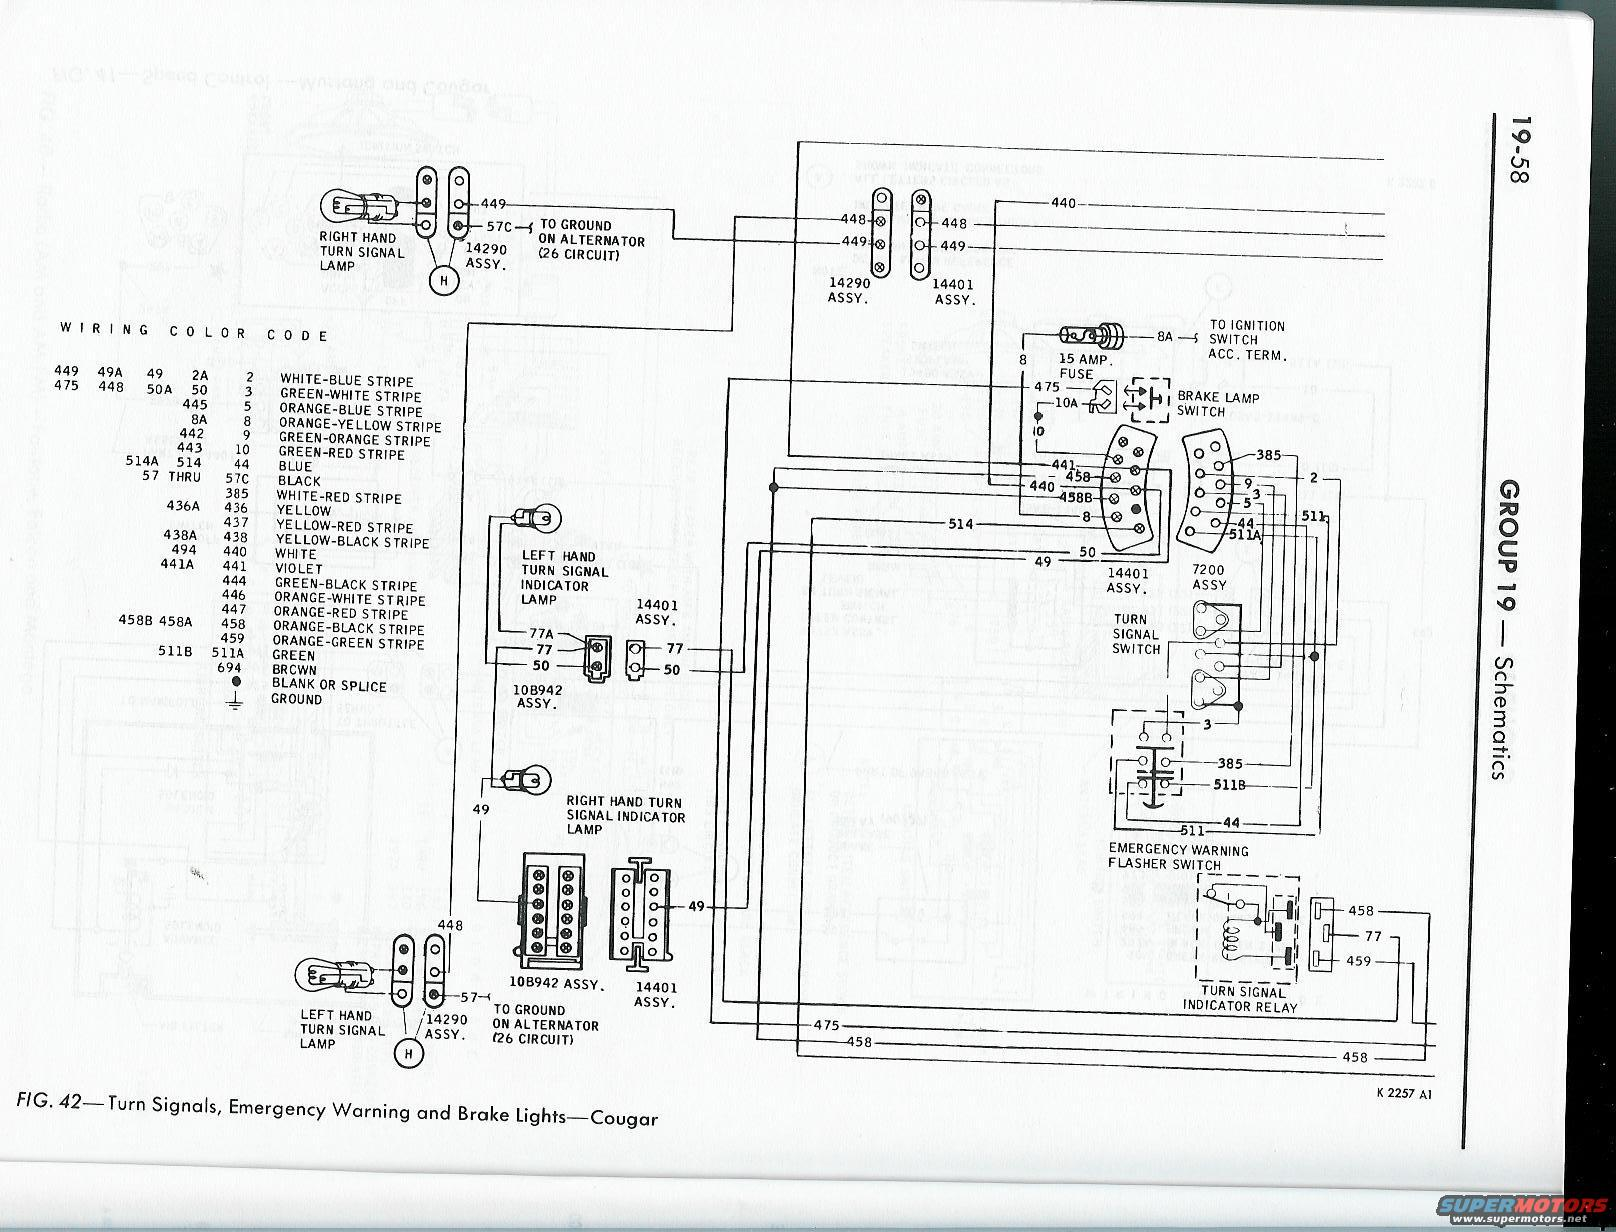 67 Mercury Cougar Wiring Diagram Will Be A Thing Ford Stereo Diagrams F87f 19b132 Ab Turn Signal 36 1968 Harness 1967